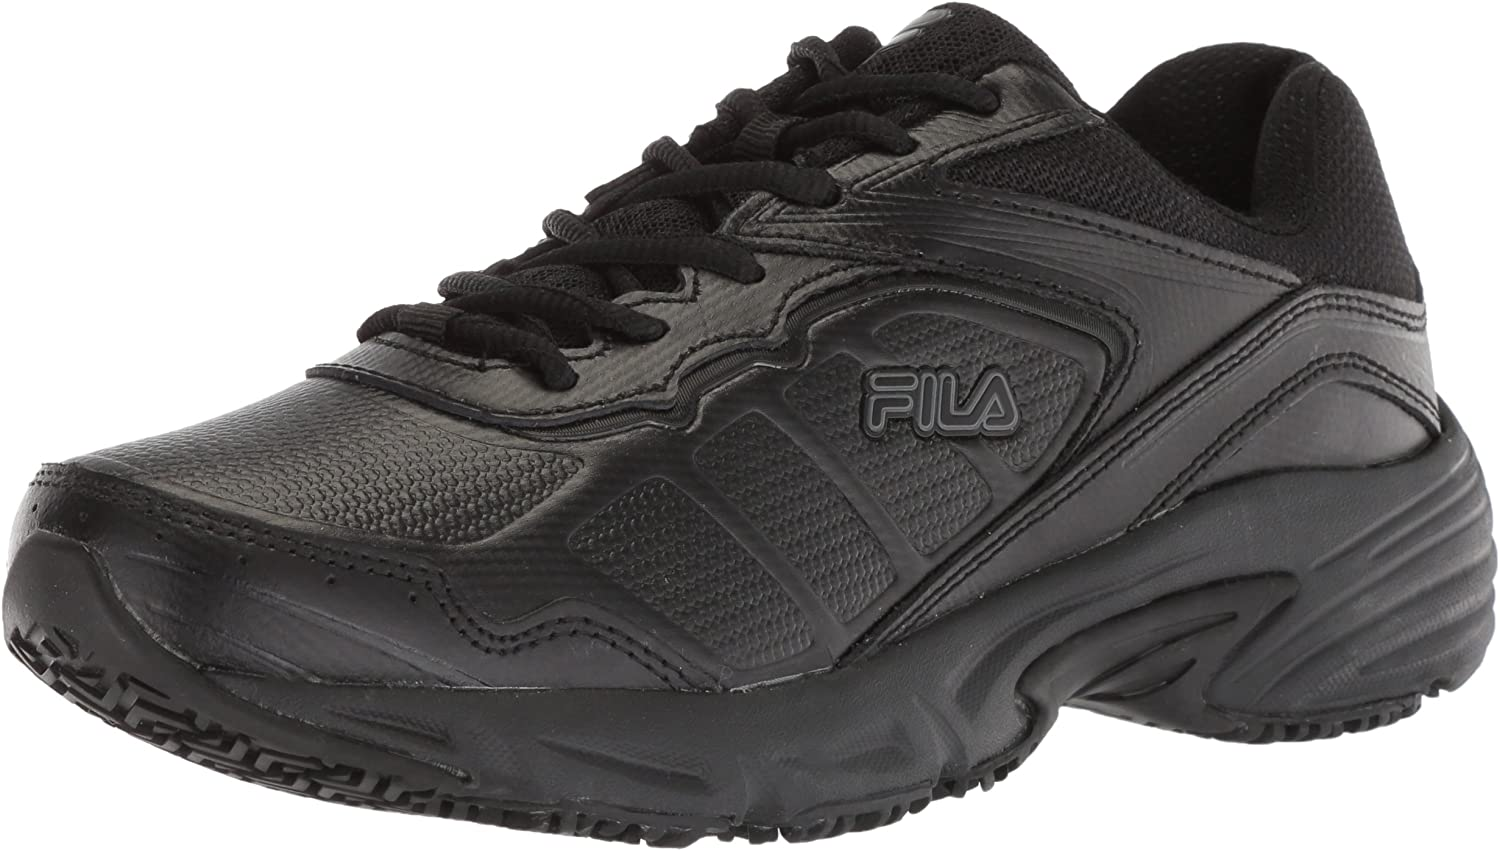 Fila Womens Runtronic Slip Resistant Running shoes Food Service shoes